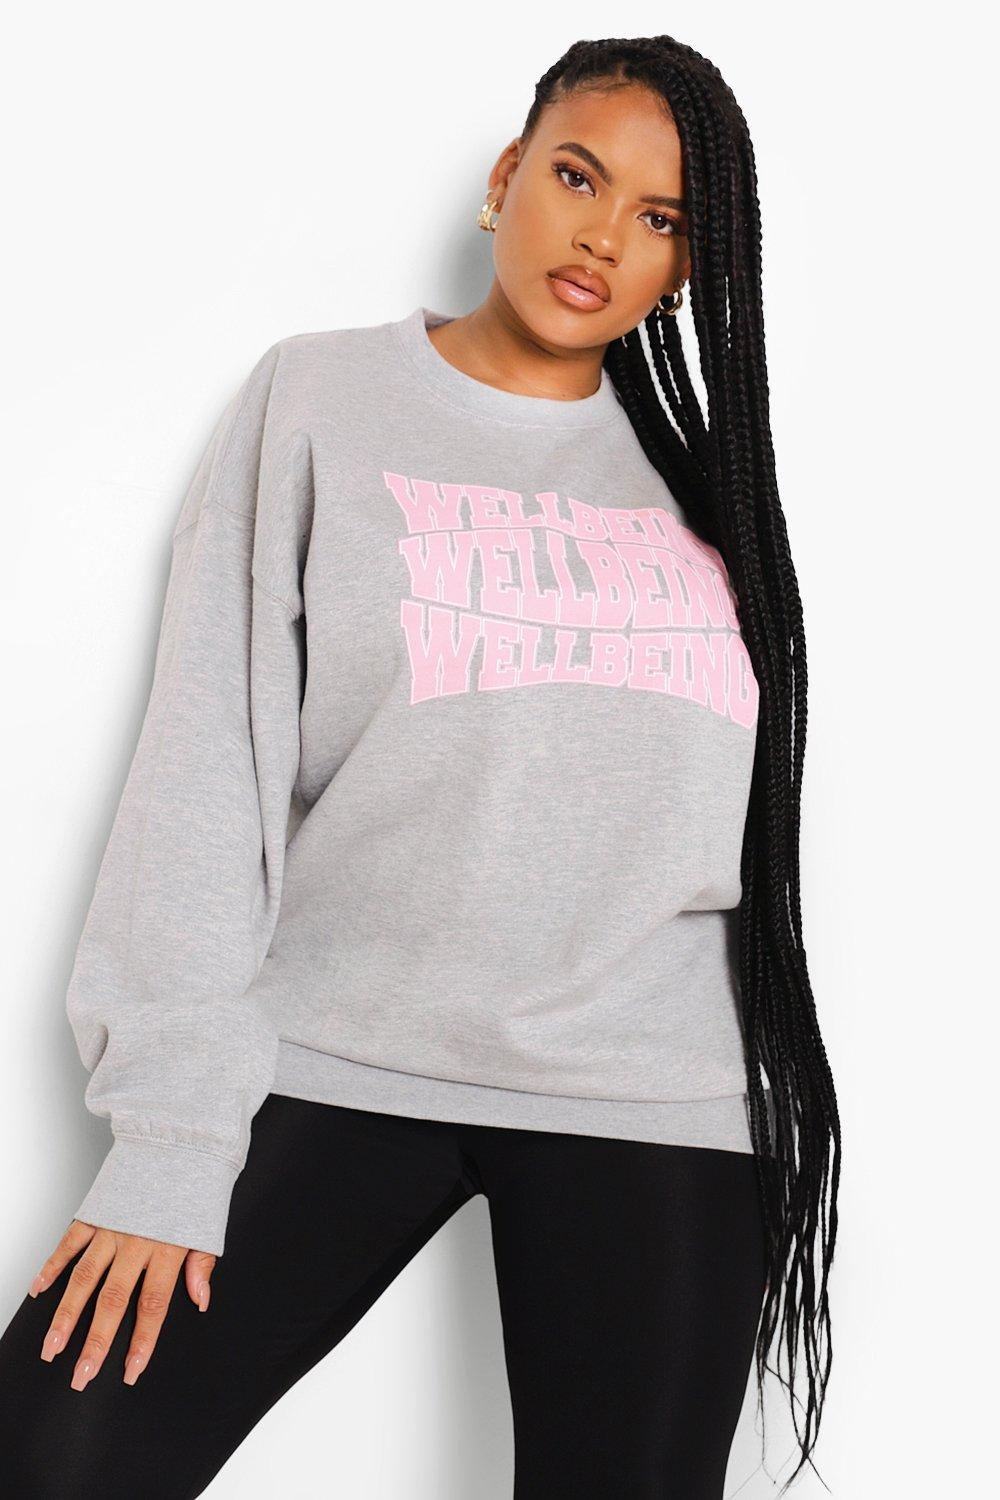 Plus Wellbeing Sweatshirt 11